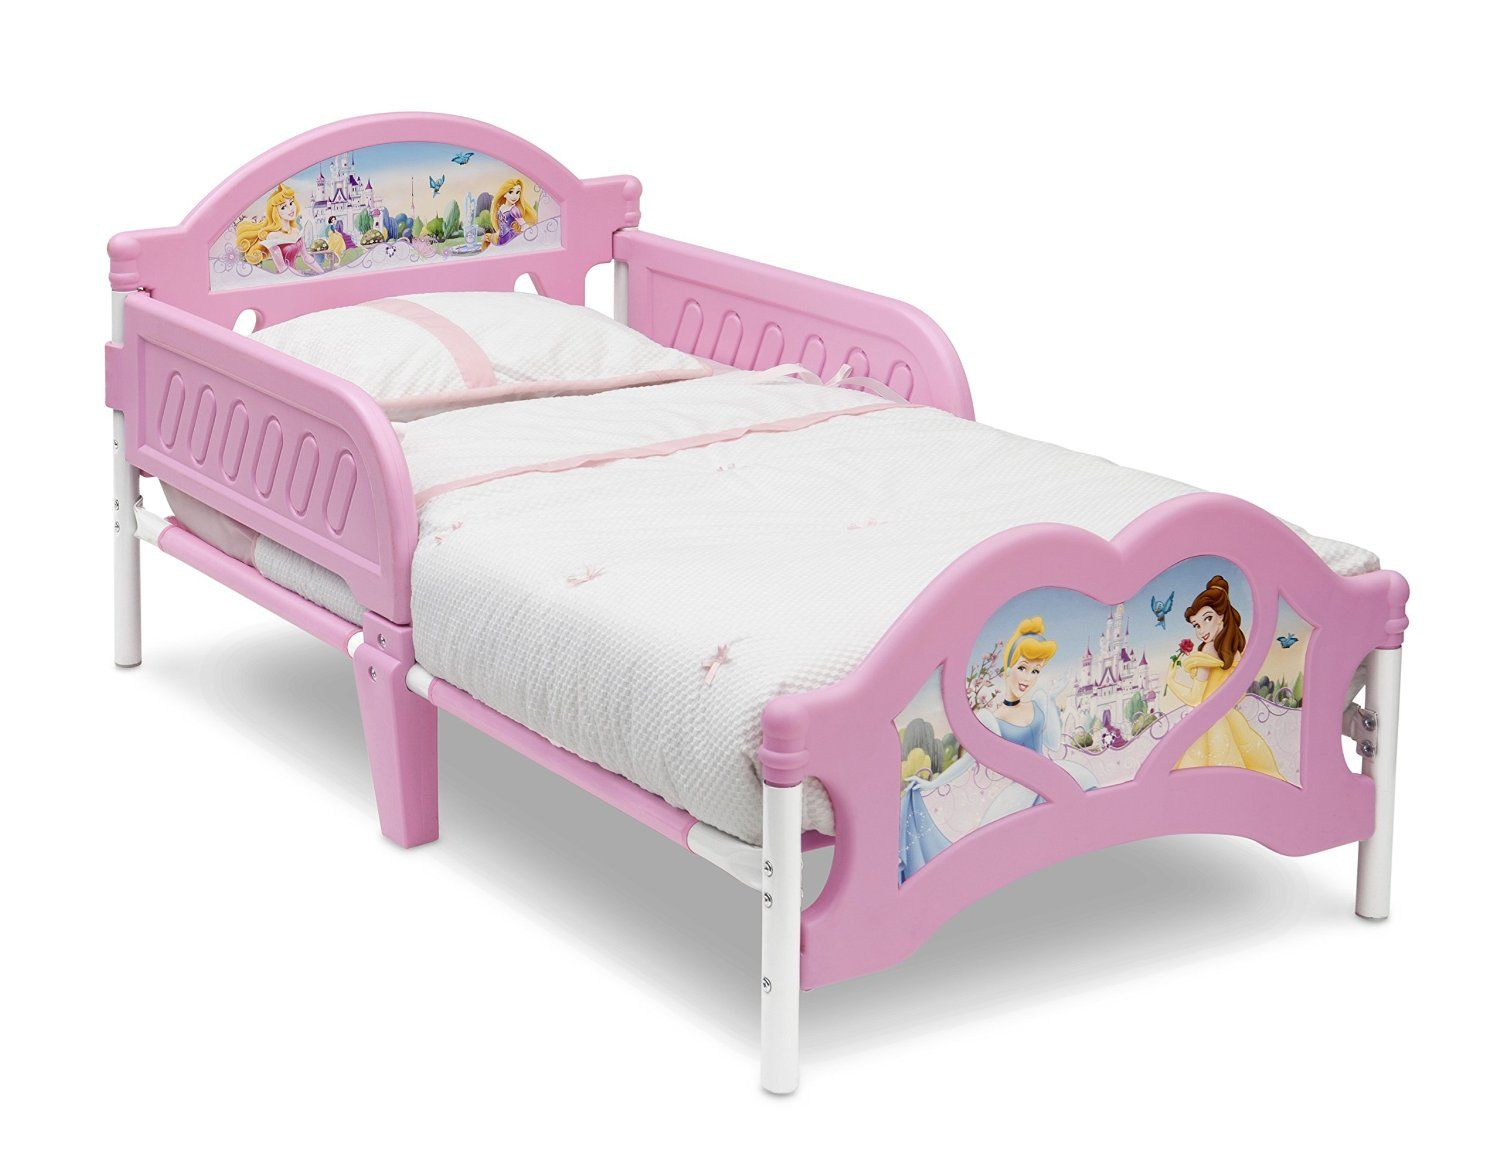 Cama infantil princesas disney bb86683ps pinterest for Camas infantiles baratas